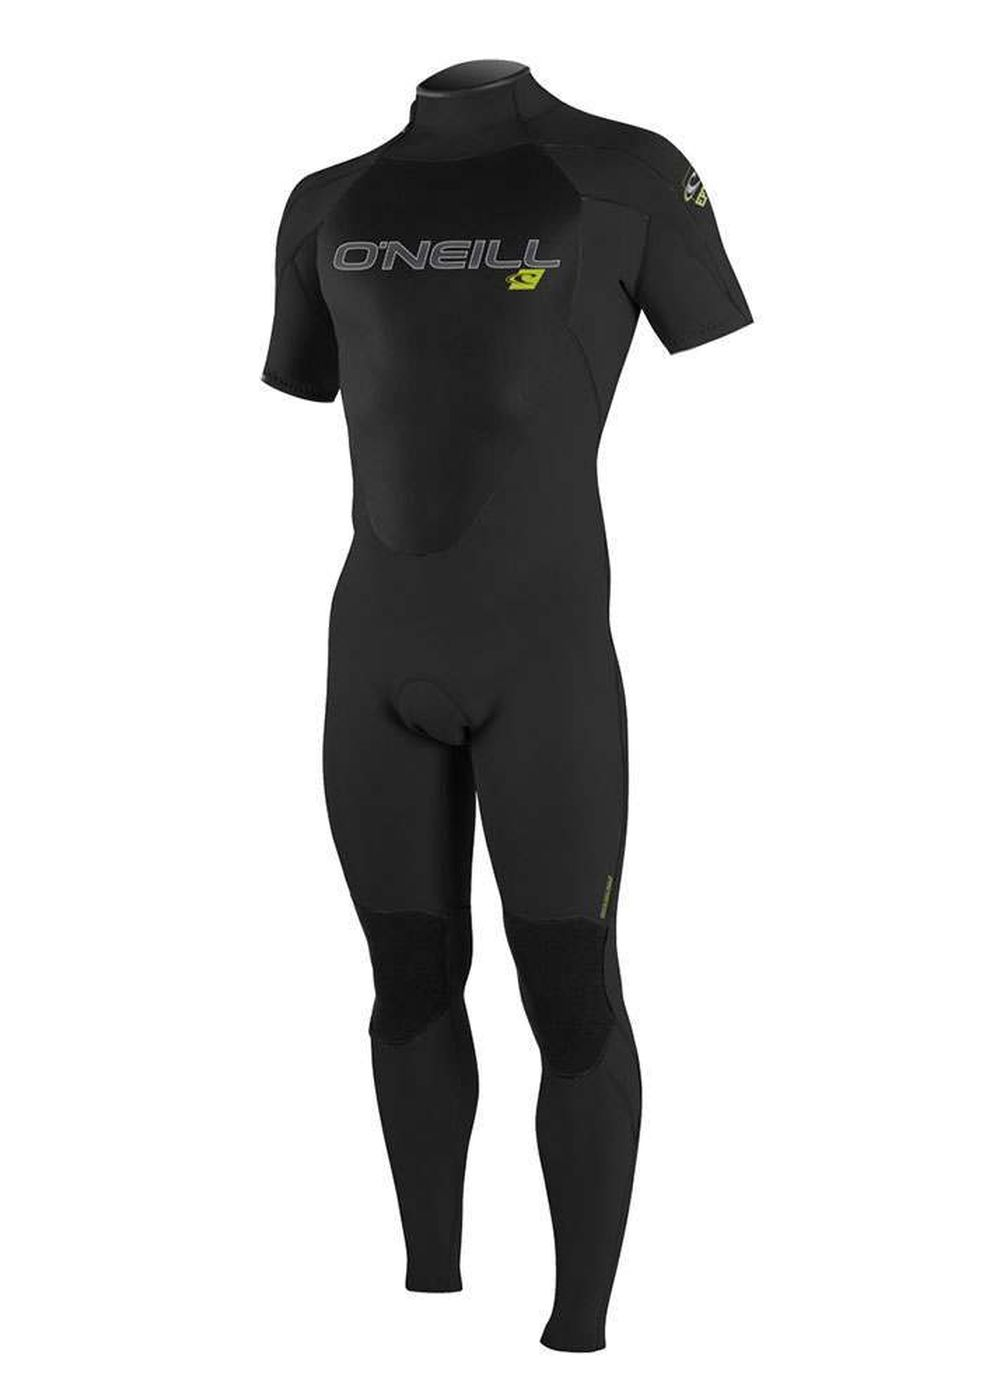 Oneill Epic Bz 3/2 Gbs Short Sleeve Wetsuit Black Picture